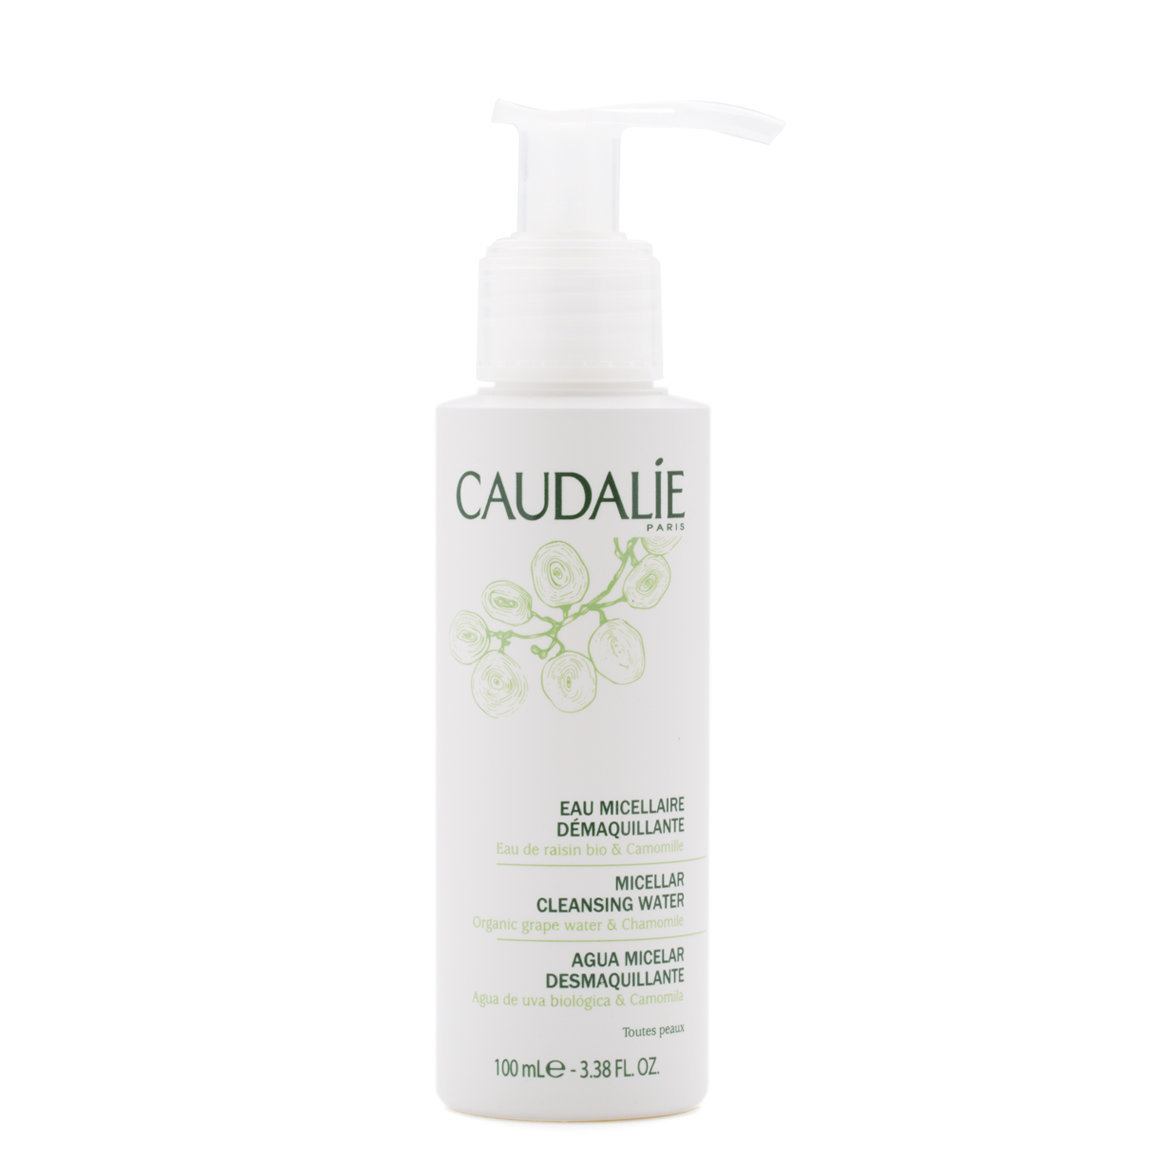 Caudalie Micellar Cleansing Water 100 ml product smear.